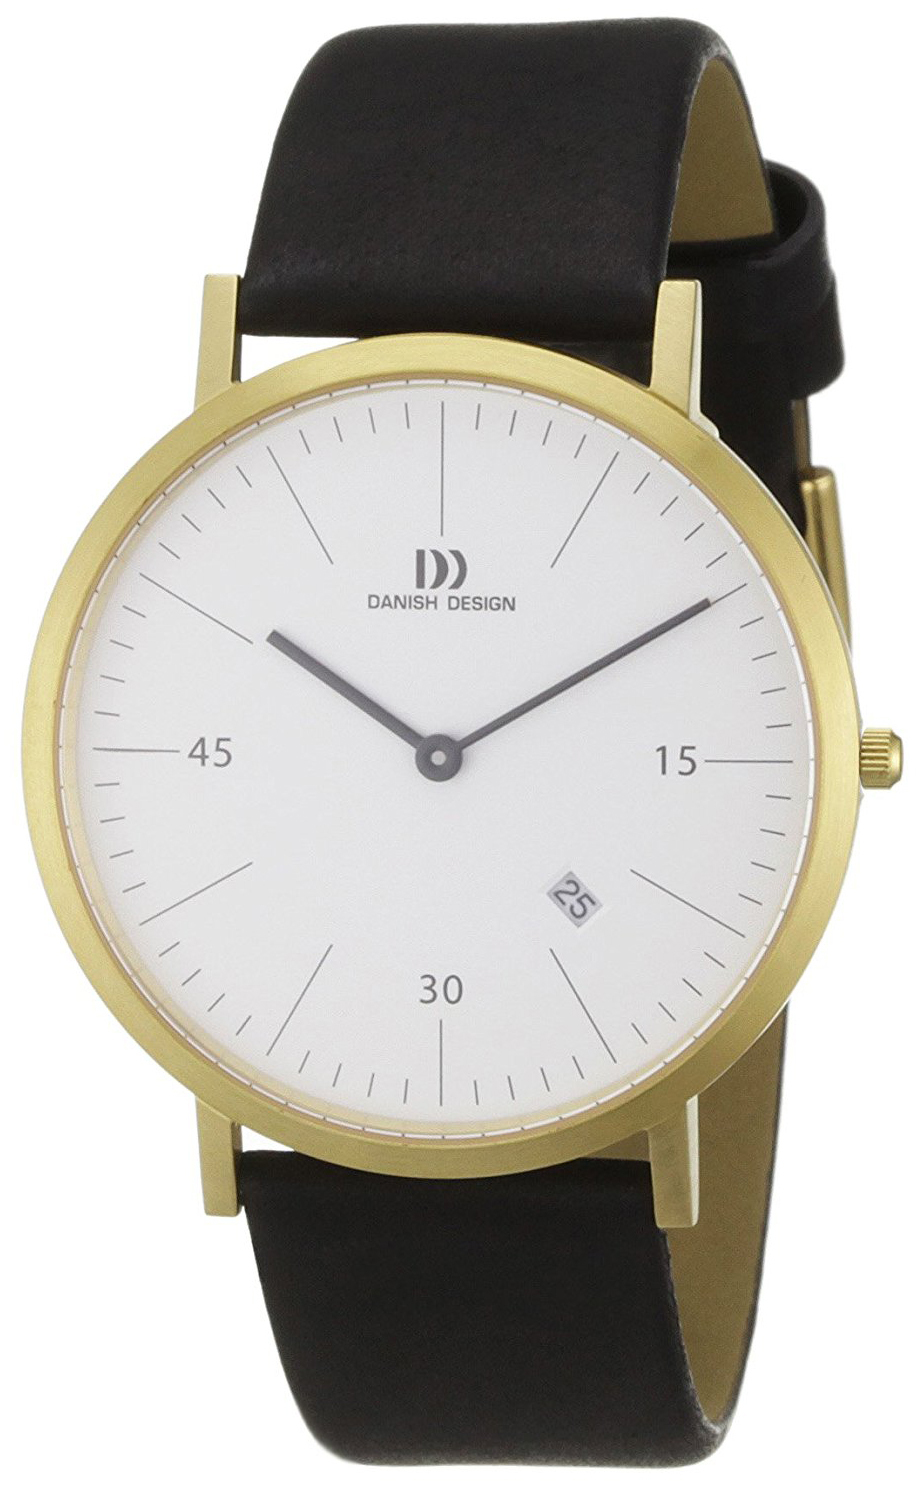 Danish Design Classic Herrklocka 3310077 Vit/Läder Ø40 mm - Danish Design